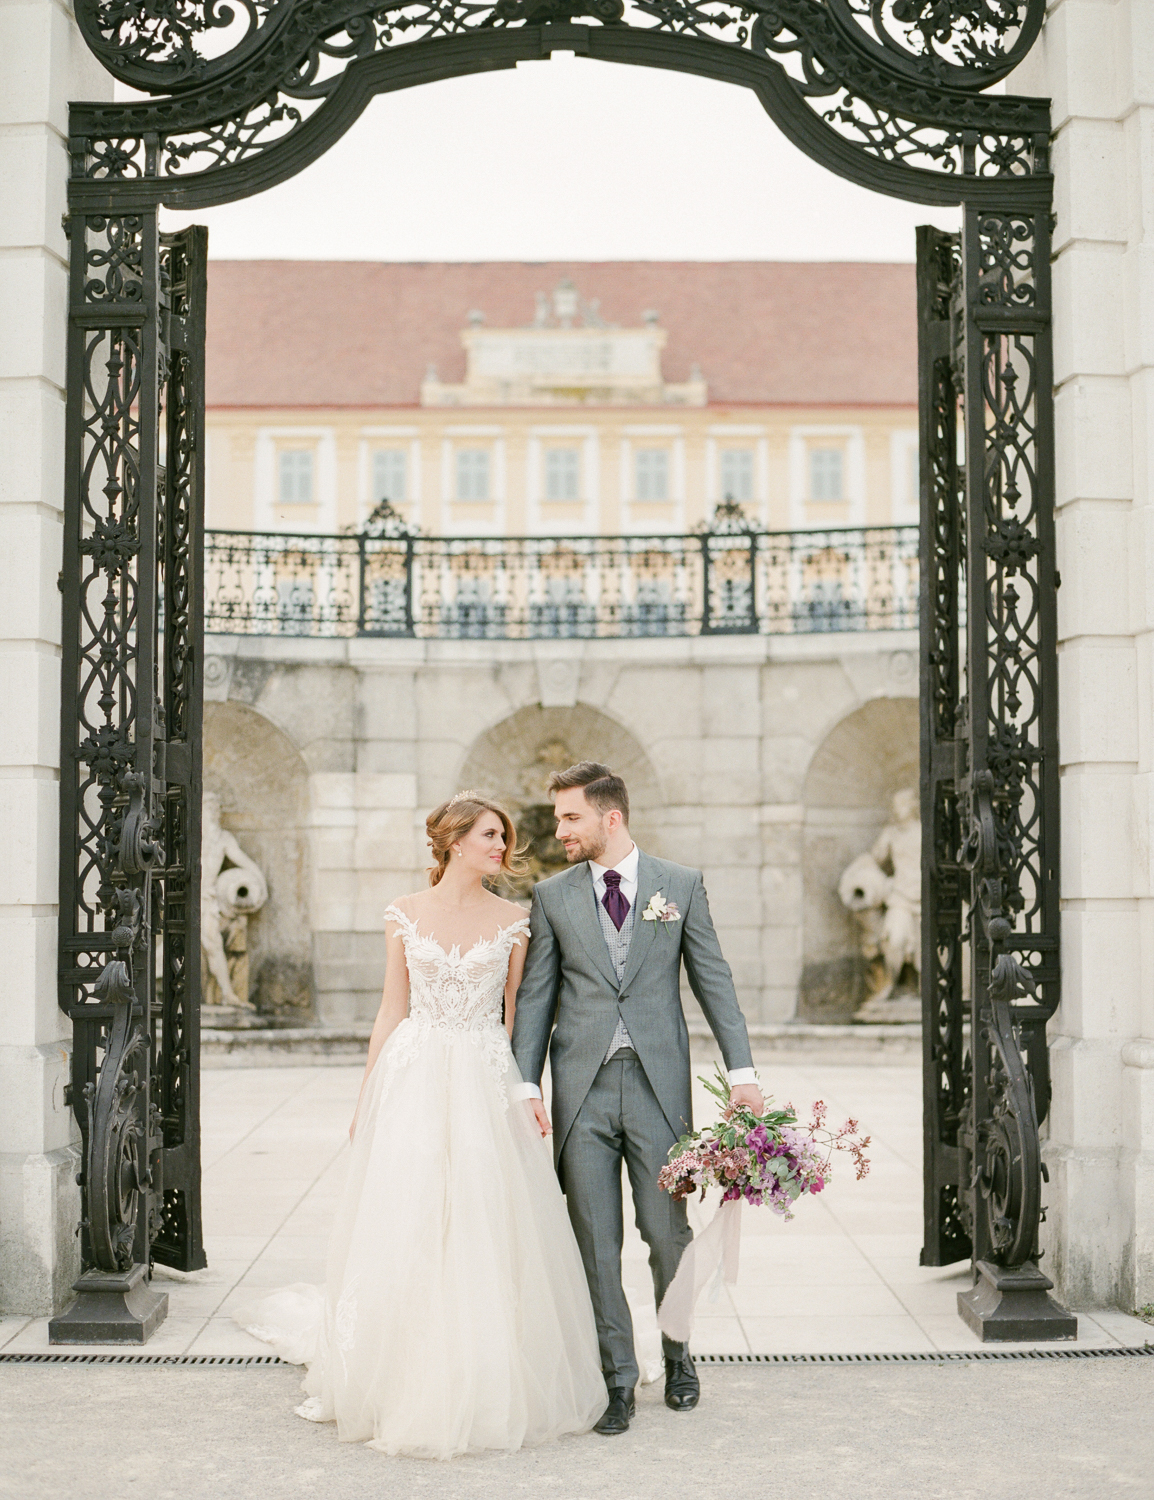 schlosshof wedding editorial vienna wedding photographer nikol bodnarova film wedding photographer204.JPG